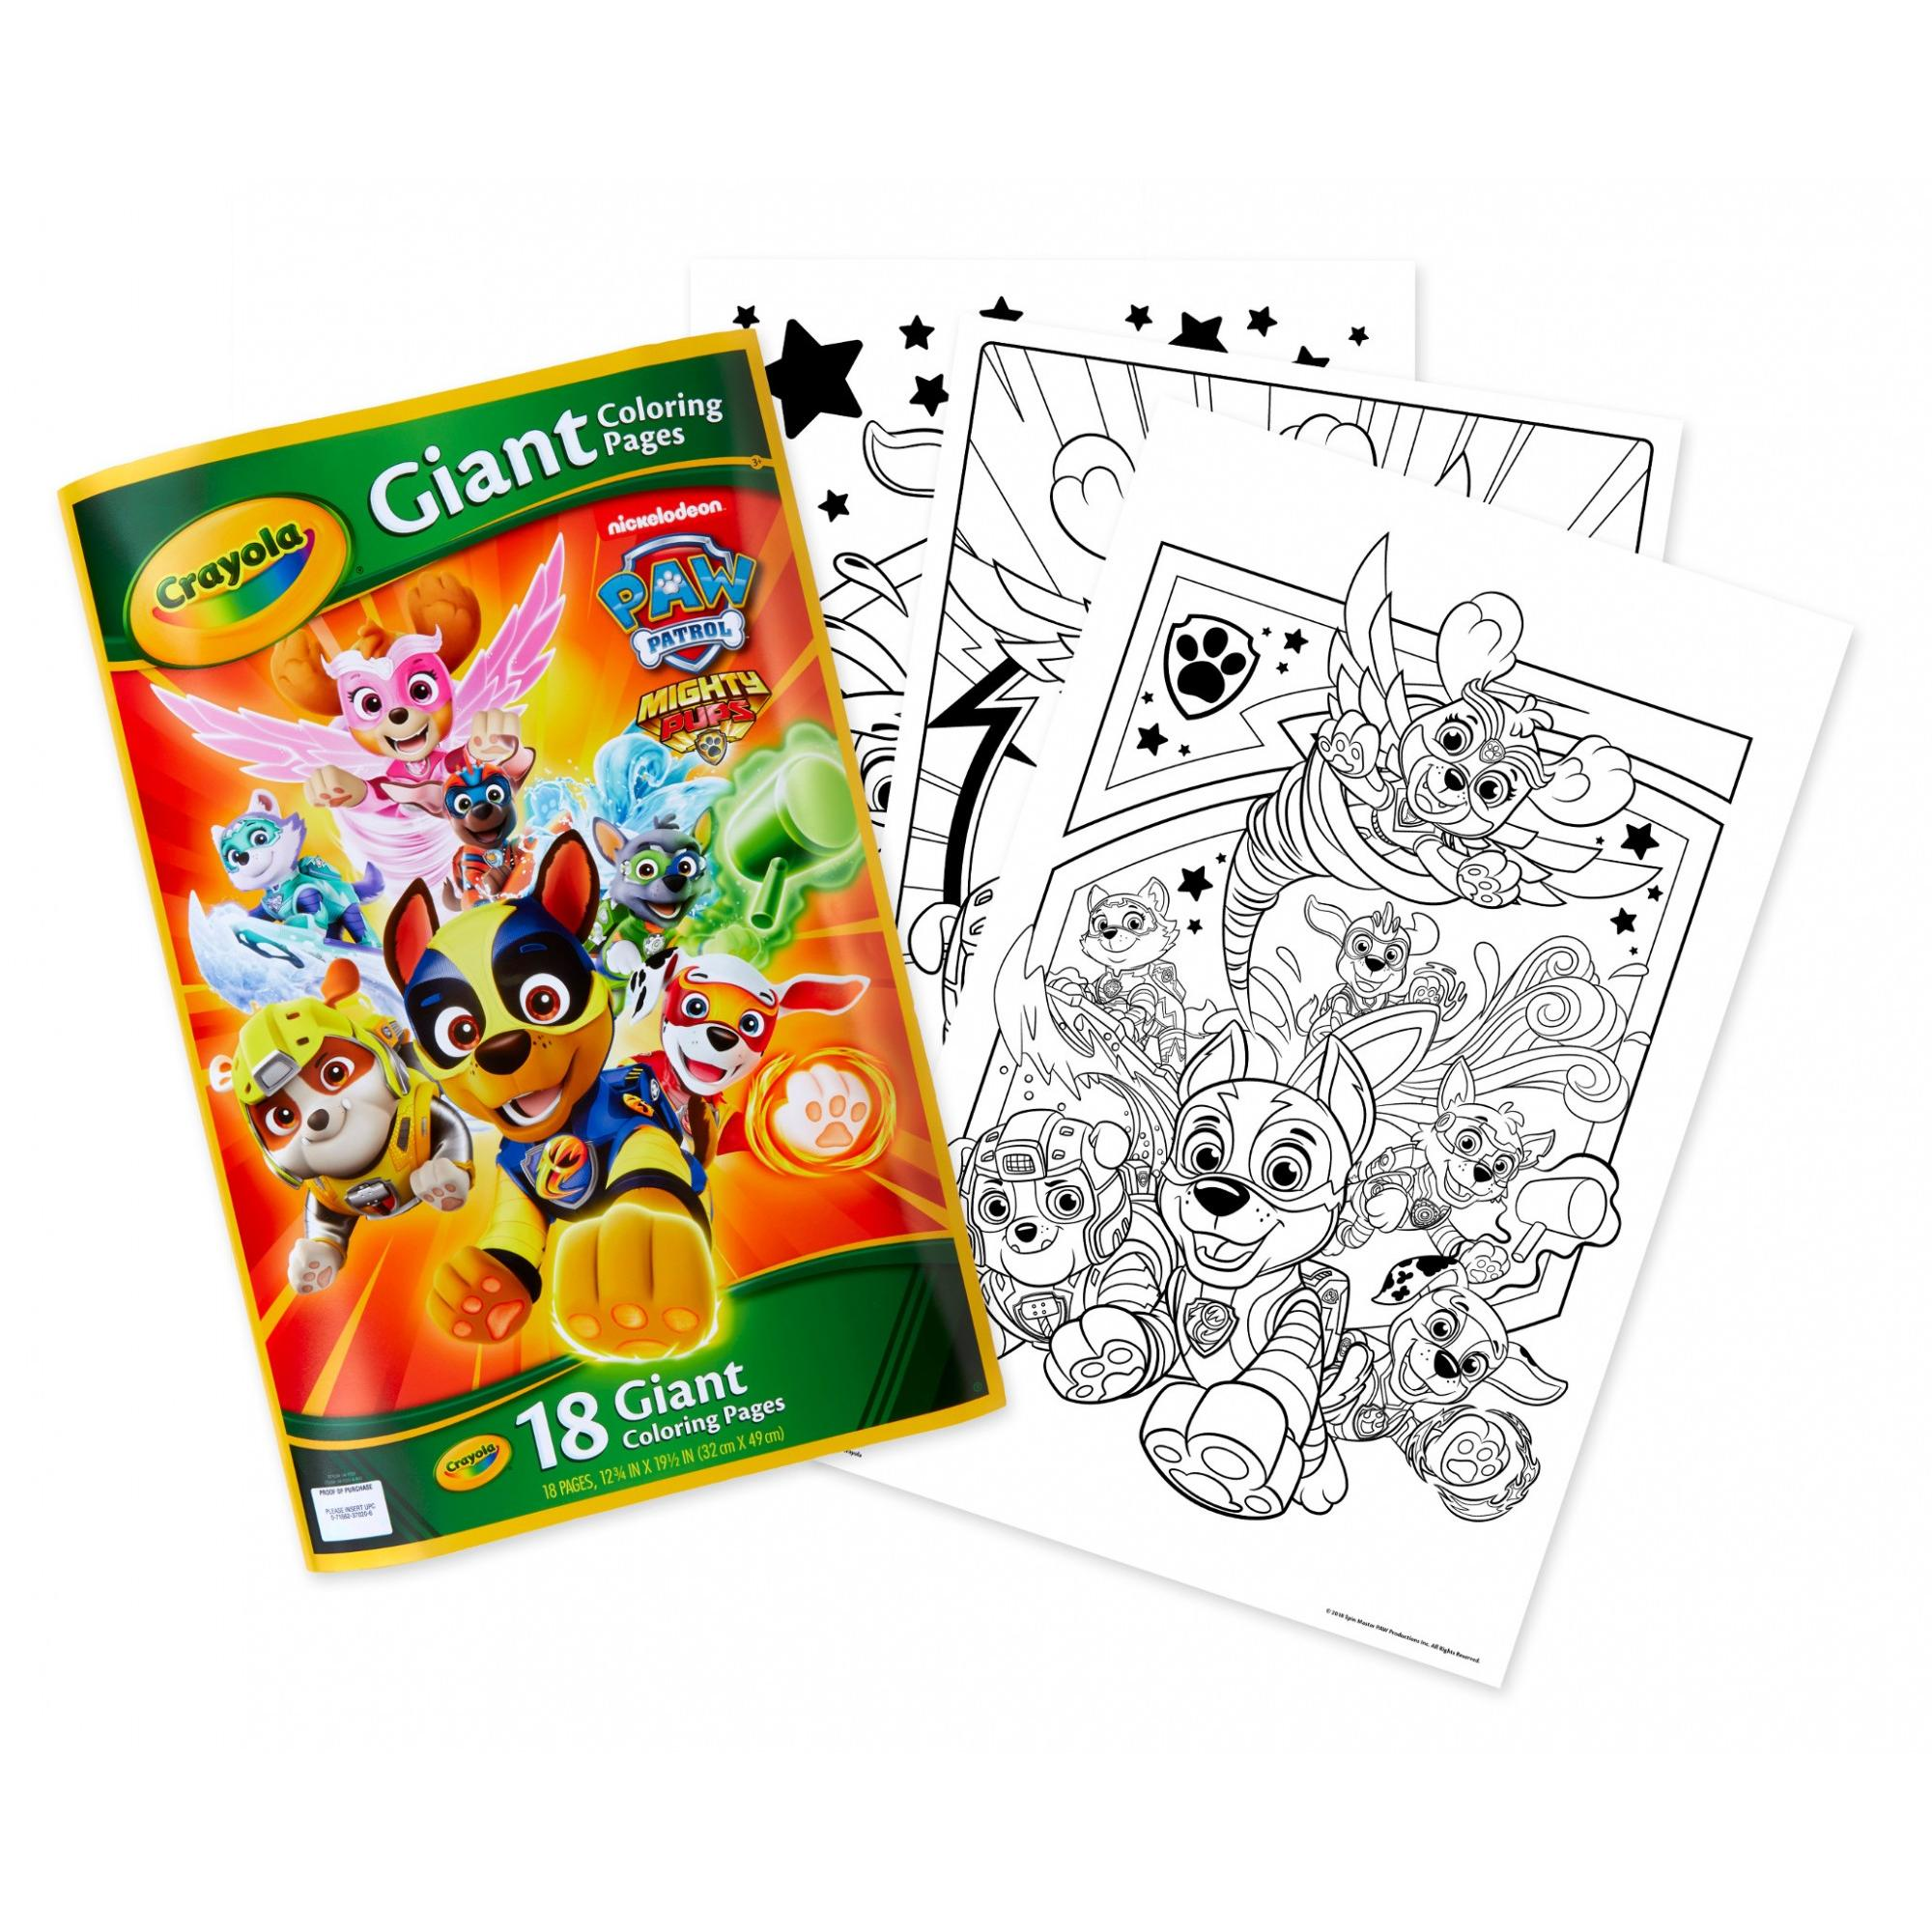 Crayola Paw Patrol Giant Coloring Pages Gift For Kids Ages 3 Child Walmart Com Walmart Com